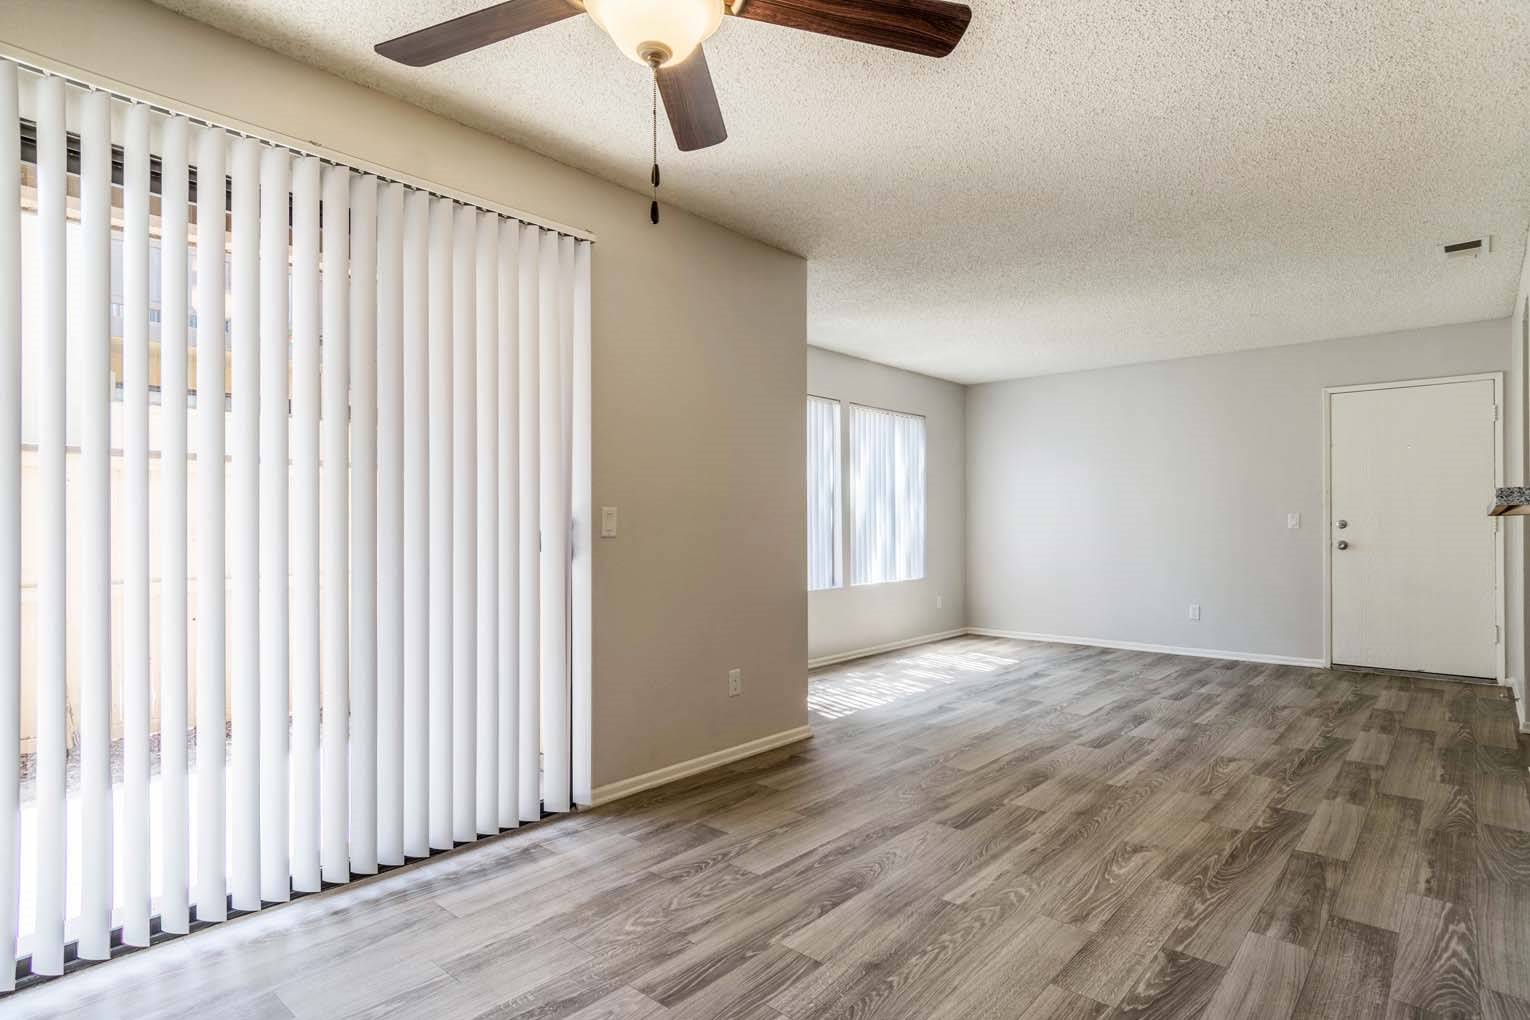 Plank flooring at Hensley at Corona Pointe Apartments in Corona, CA